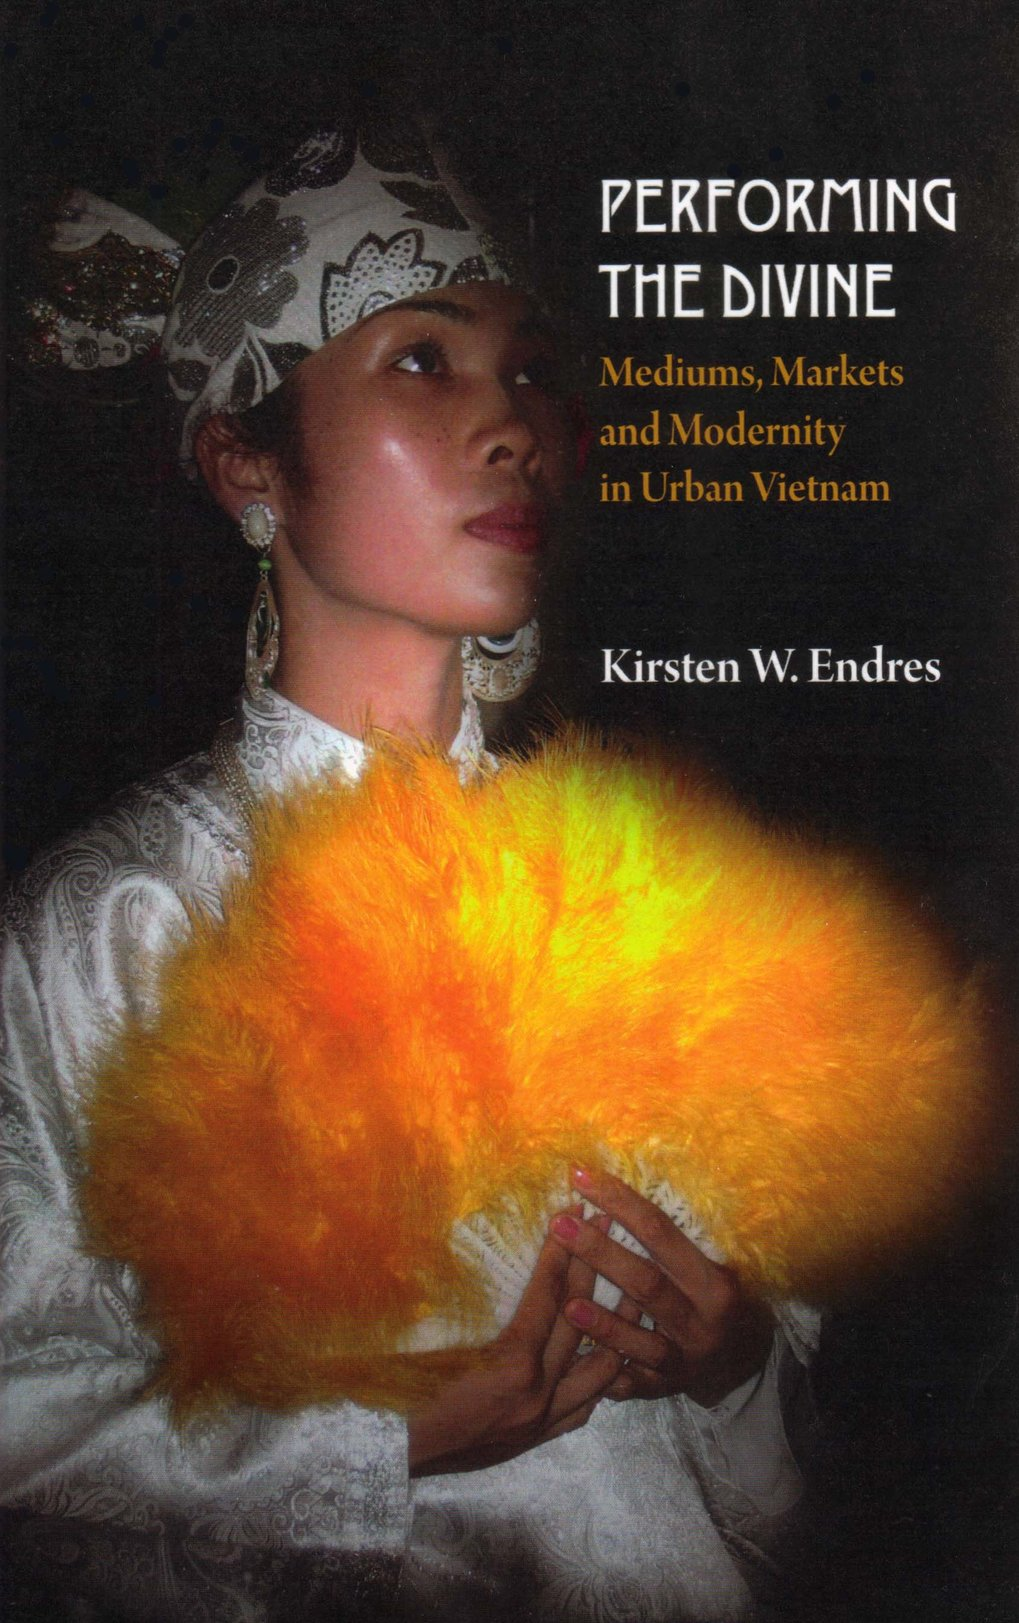 Performing the Divine. Mediums, markets and modernity in urban Vietnam